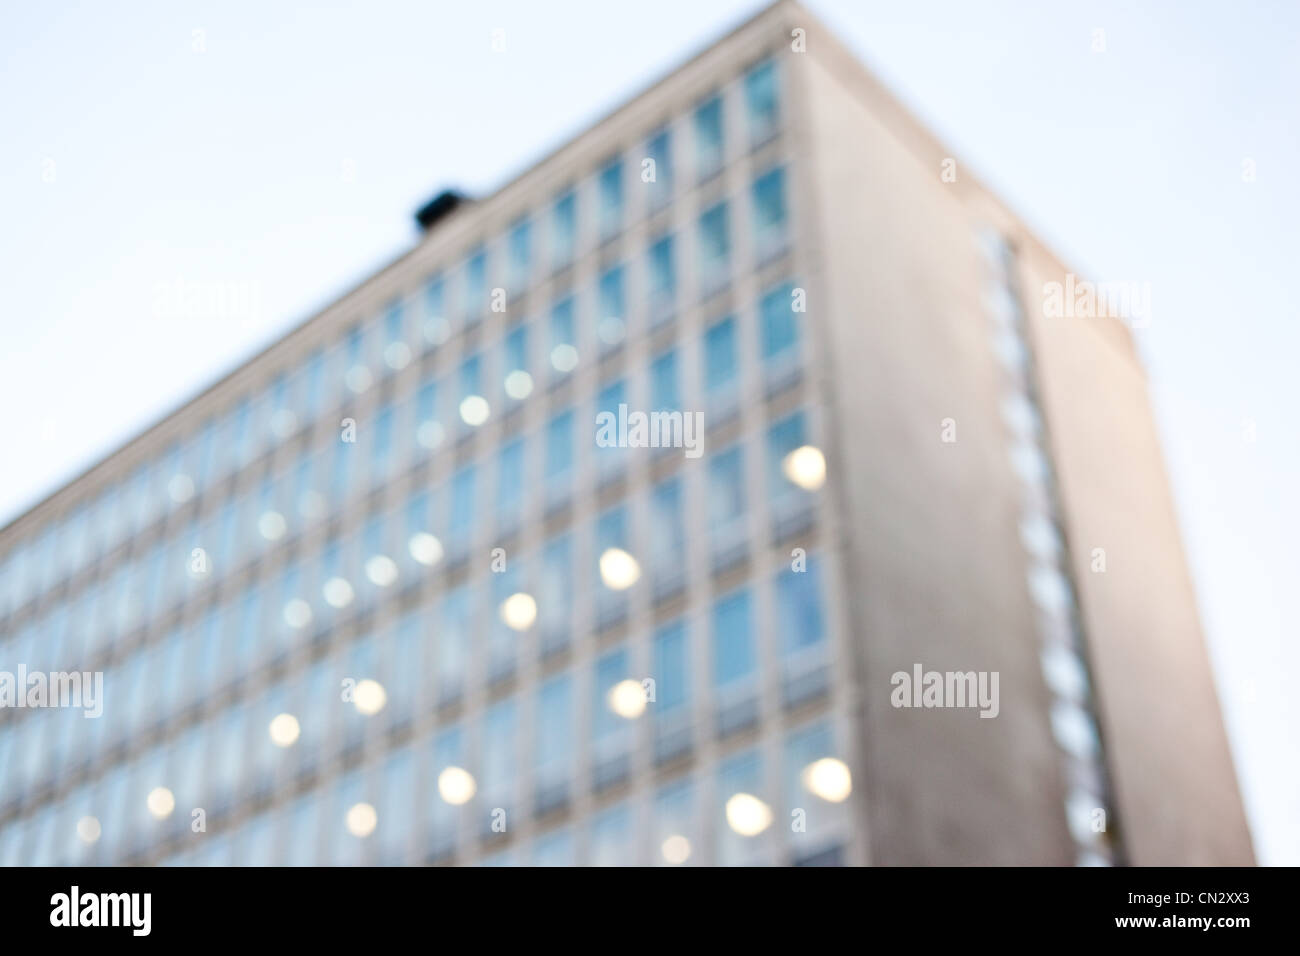 Blurred building exterior, London, England - Stock Image